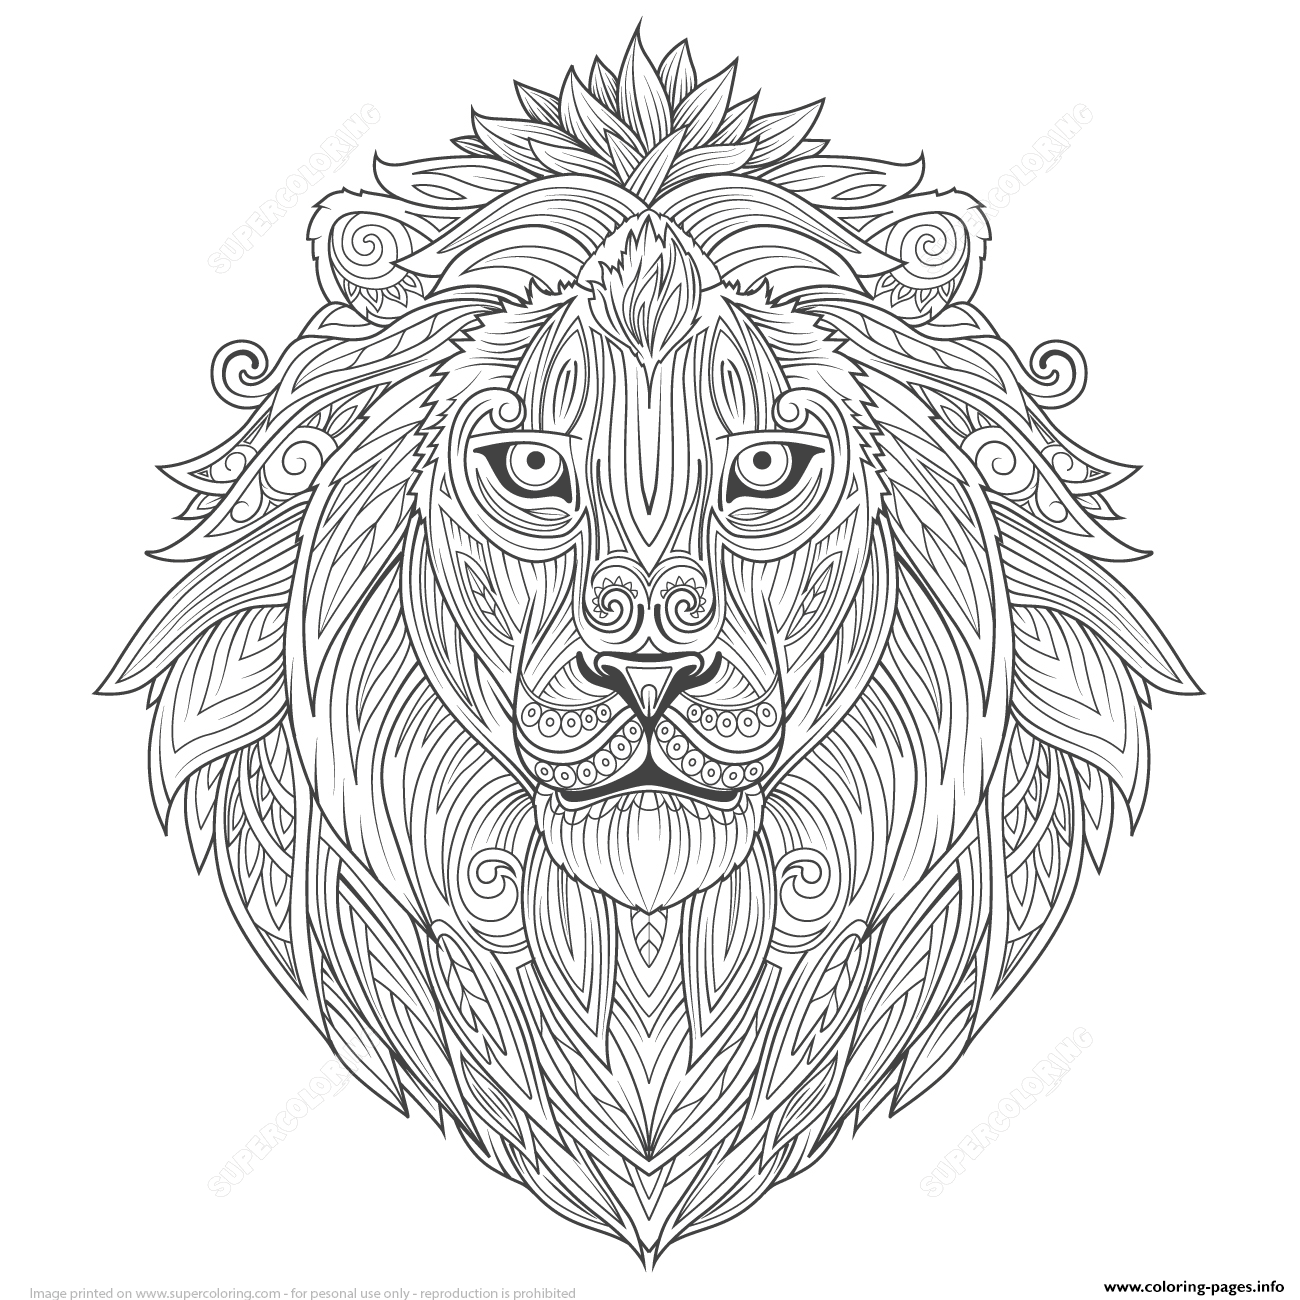 lion ethnic zentangle adults coloring pages - Lion Coloring